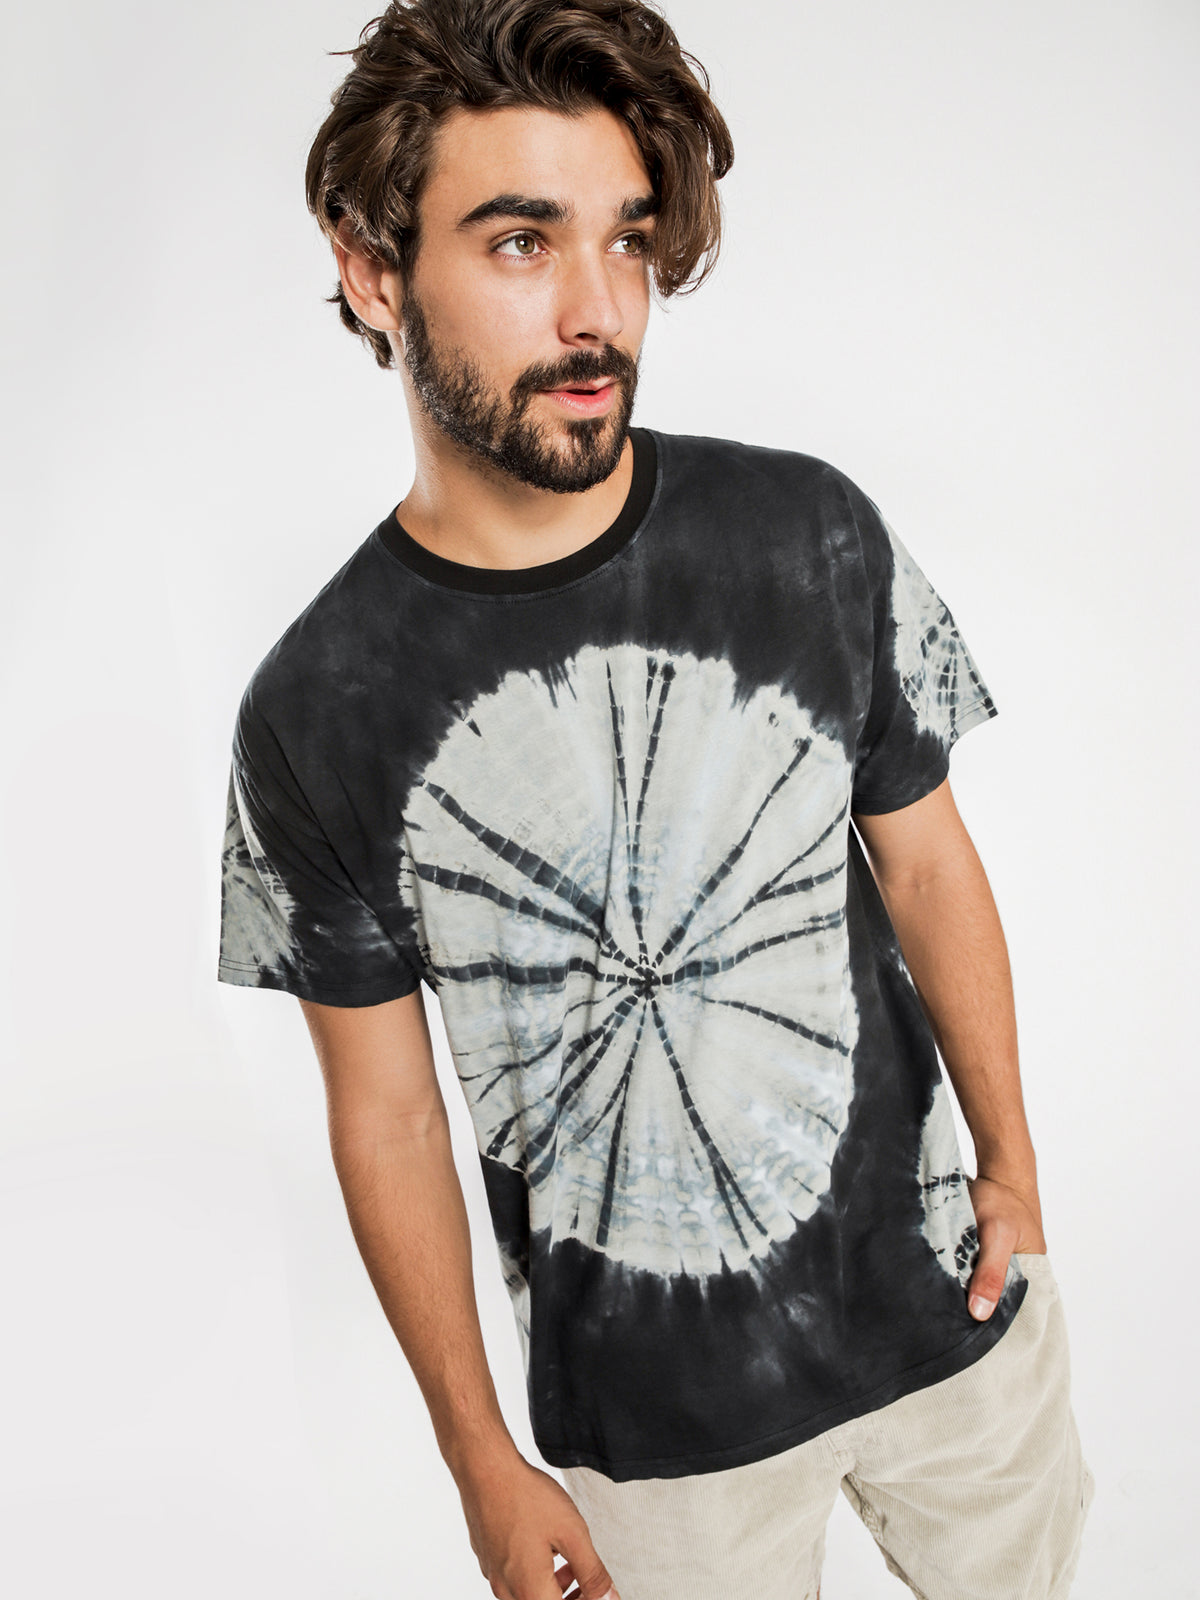 Smashing Vintage T-Shirt in Blue Tie-Dye